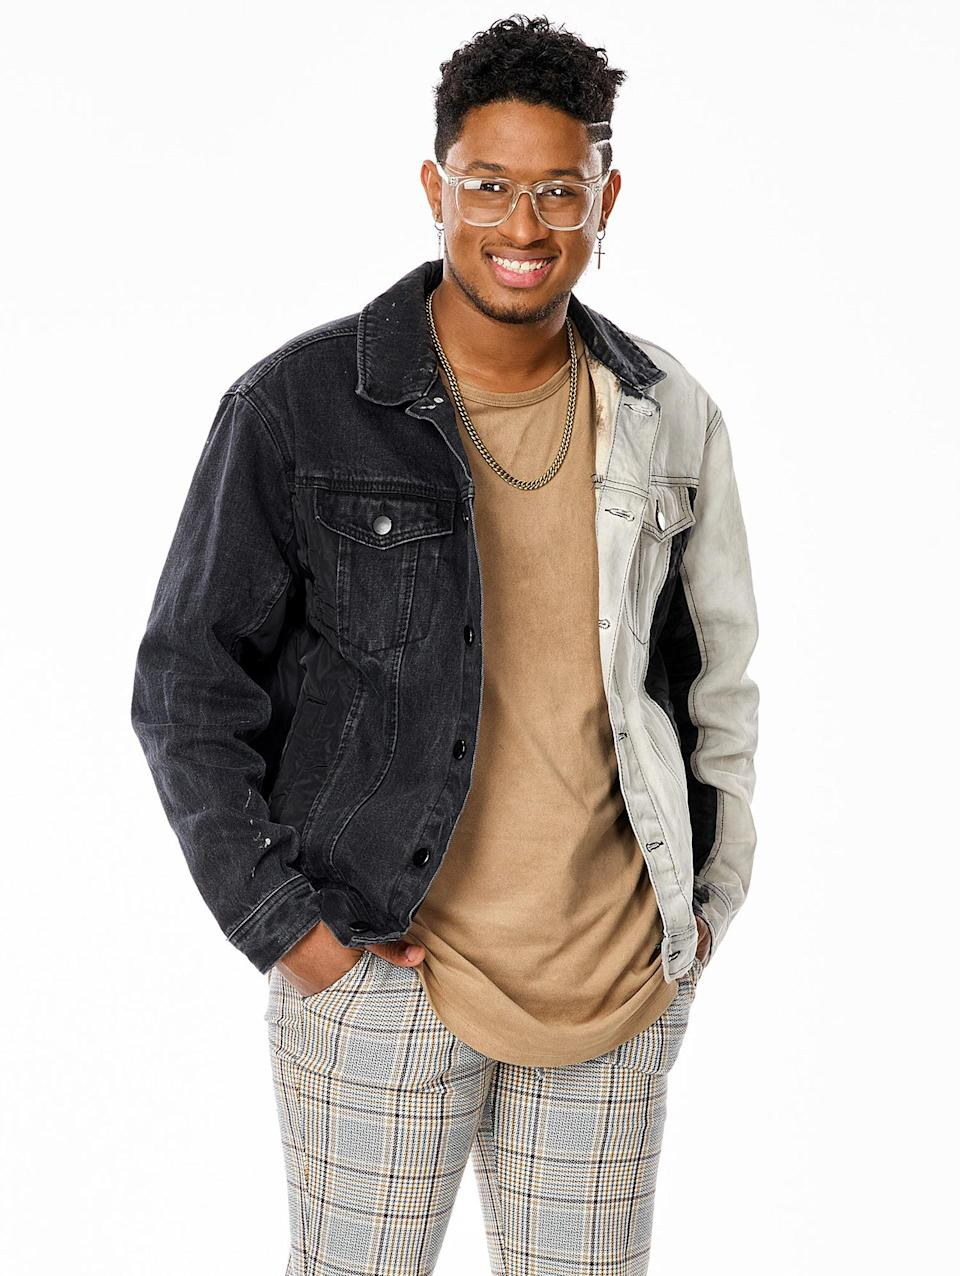 """<p><strong>Age:</strong> 21</p> <p><strong>Hometown:</strong> McKinney, Texas</p> <p><strong>Resident:</strong> Woodlands, Texas</p> <p>Romeo had a rocky start to life, but he always found comfort in music. At 3 years old, Romeo and his siblings were placed into foster care, but they were eventually all adopted into one family. He started singing and as he got older, he began performing around town at local coffee shops. At 16, Romeo got in trouble with his school and was afraid of disappointing his parents so he ran away and tried to make it on his own by busking on the streets. He finally understood unconditional love when he came across his face on a missing person poster and decided to return home to his family. Romeo now teaches music and art to kids, leads worship at his church and is working on building a relationship with his birth mother. </p> <p>""""I am STOKED to work with Nick,"""" he says. """"We are very similar vocally and in our artistry. I know I can go far with him.""""</p> <p>""""Working with Nick has been a dream come true,"""" he continues. """"He has taught me so much, and I've been able to use what he's taught me to better myself as an artist and as a singer.""""</p>"""